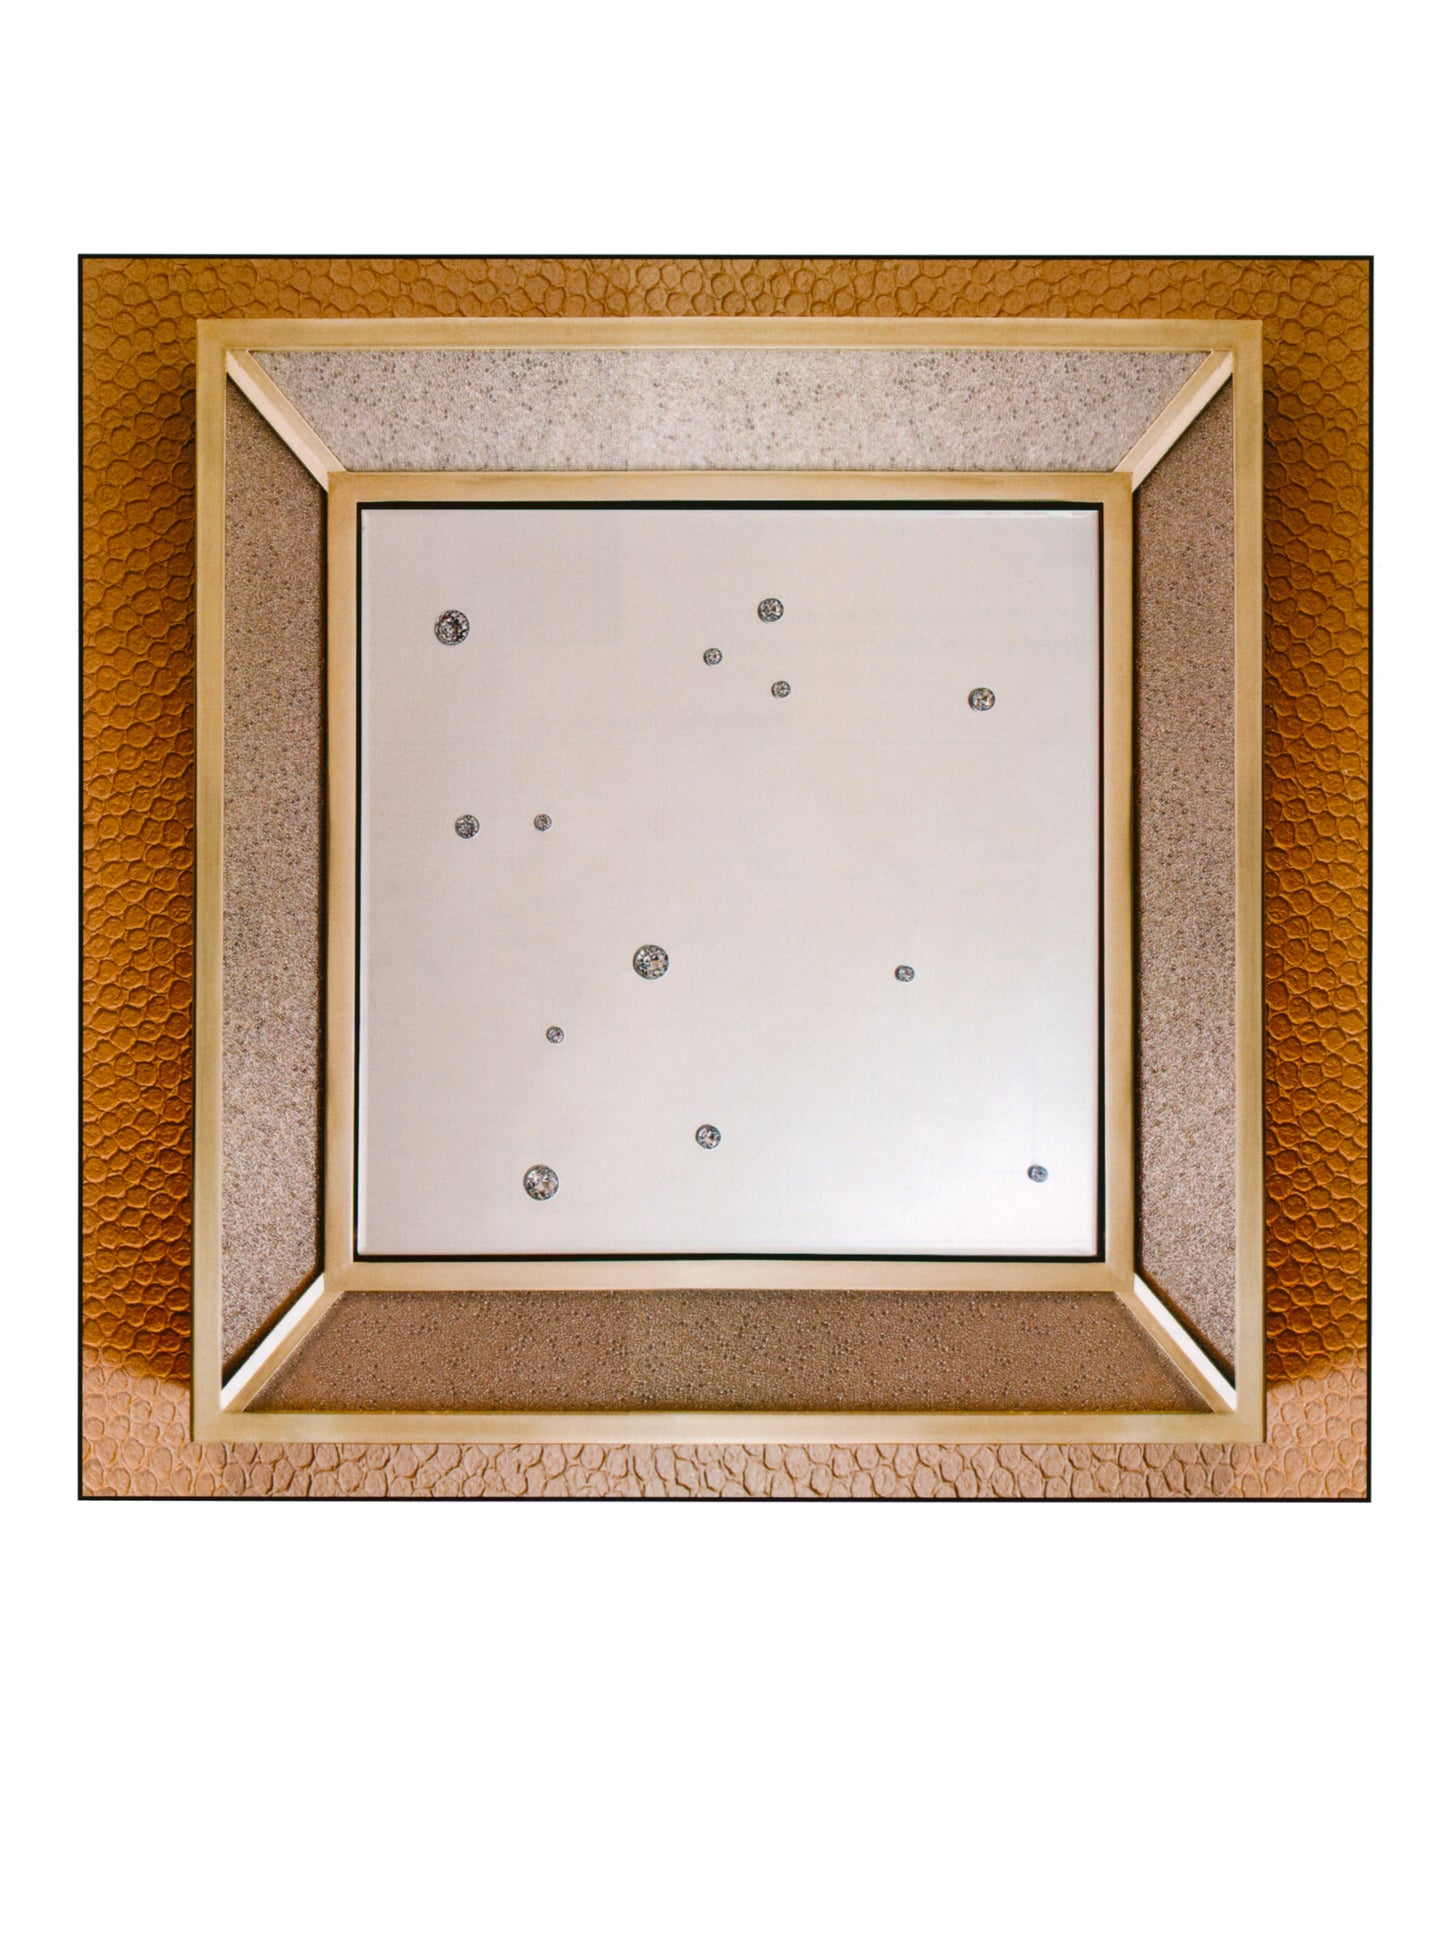 Luna Mirror with Embedded Swarvoski Crystals